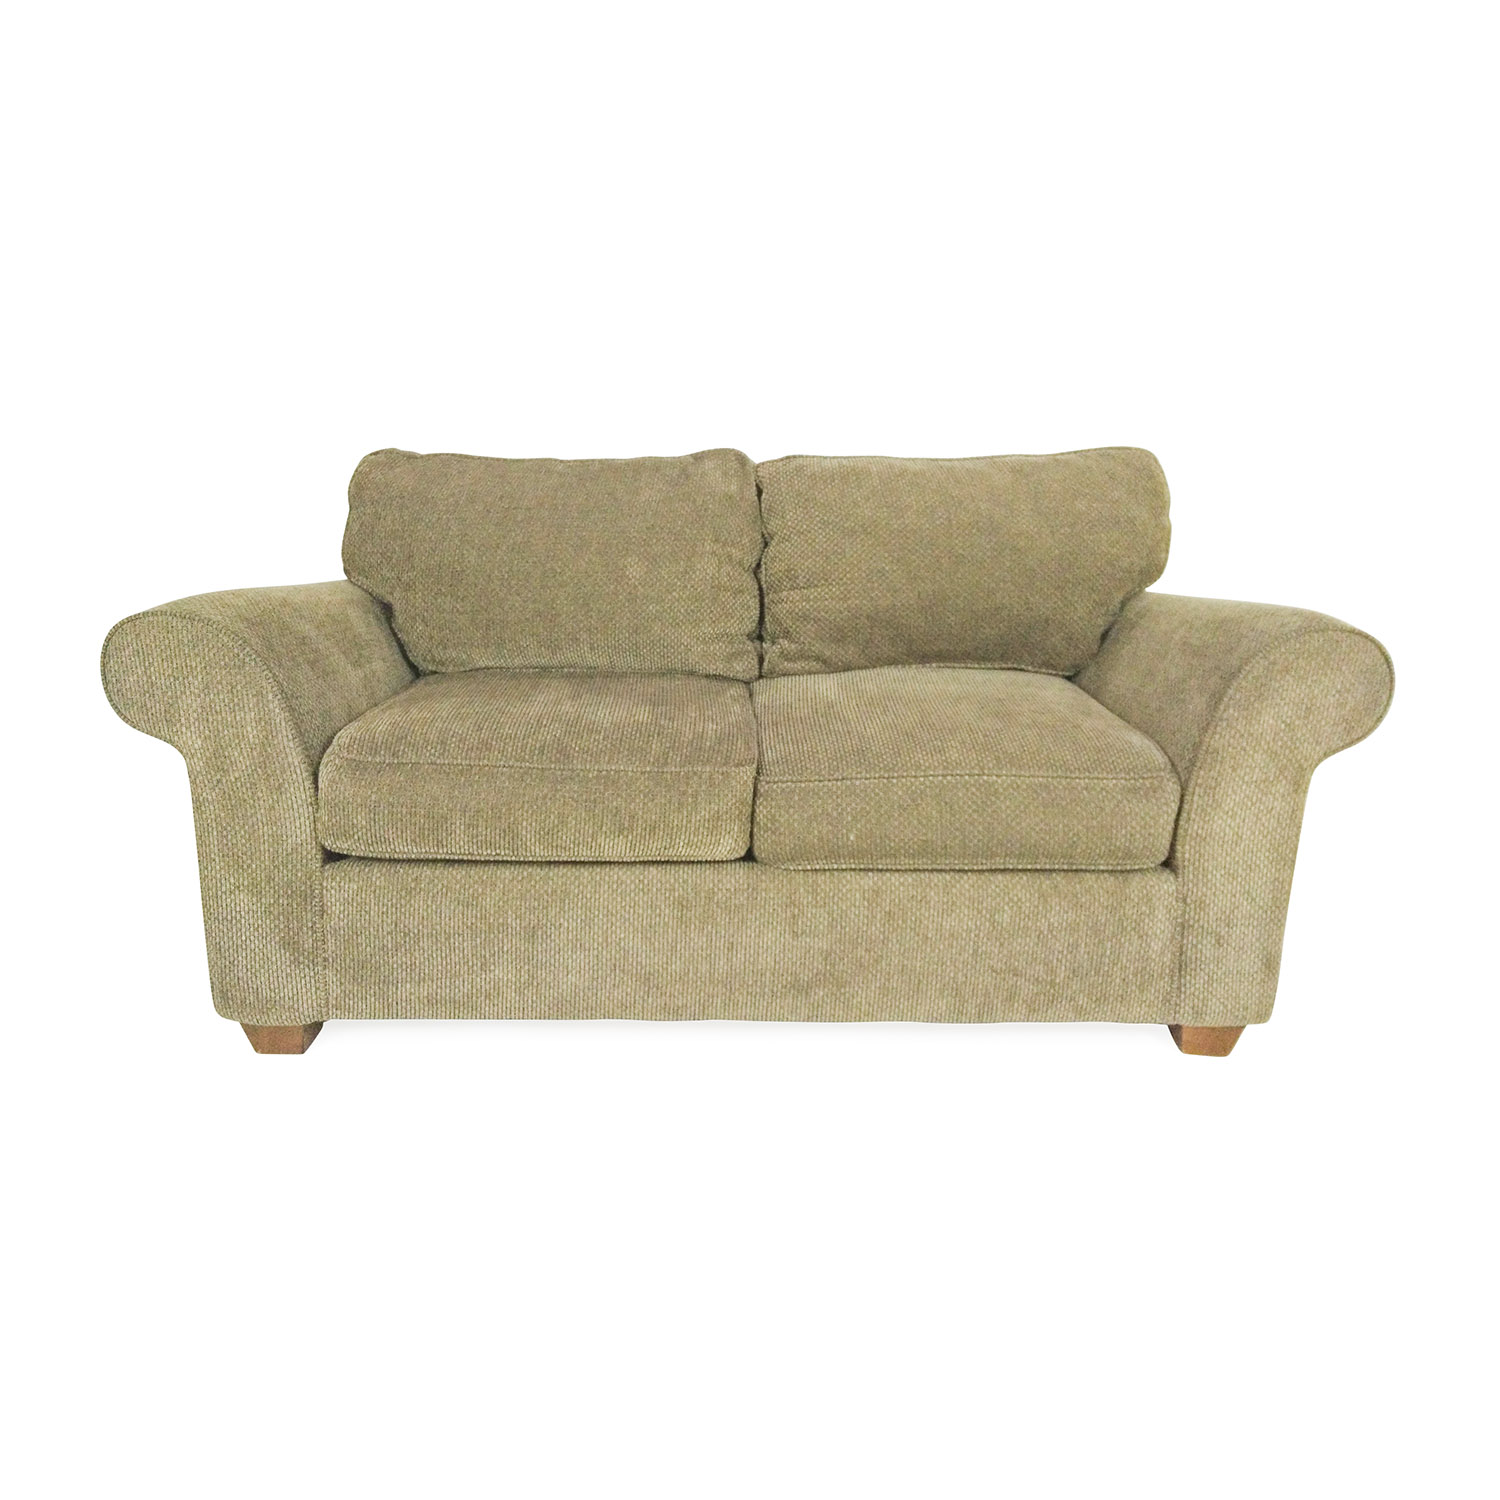 Bloomingdales Bloomingdales Classic Loveseat Loveseats